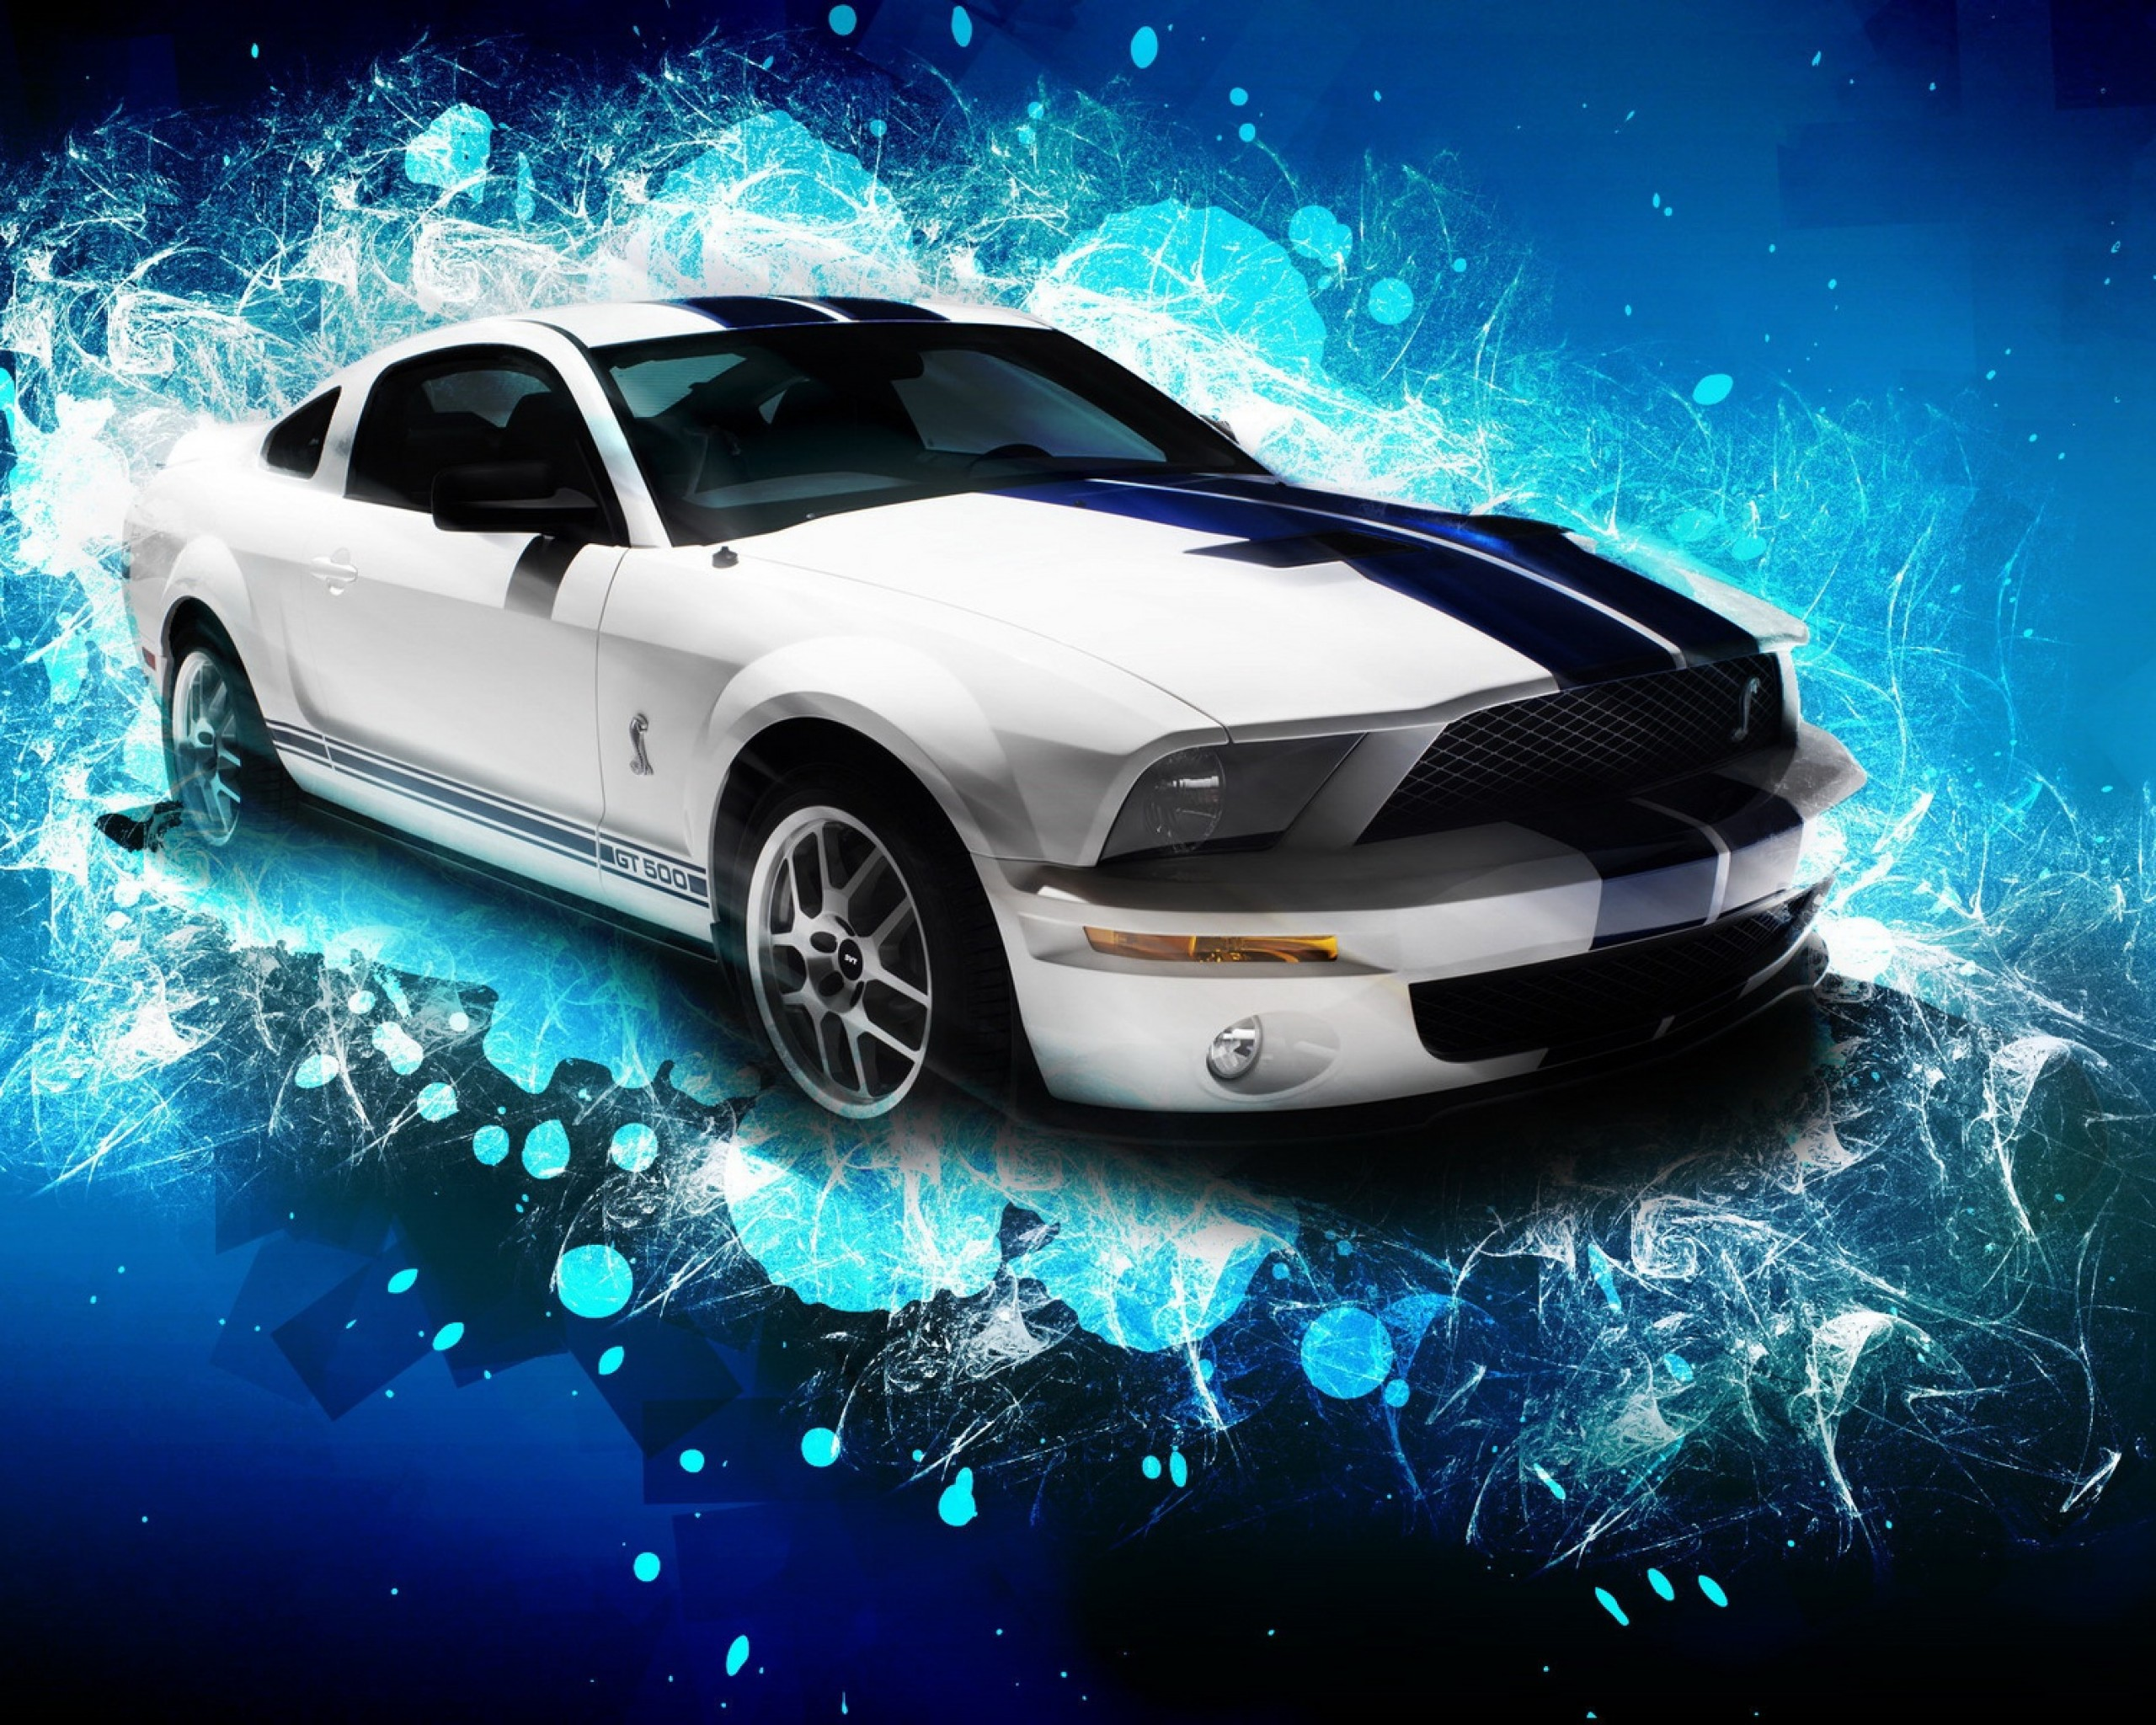 Ford Mustang Shelby GT500 Desktop Wallpaper in High Resolution at Cars 2560x2048